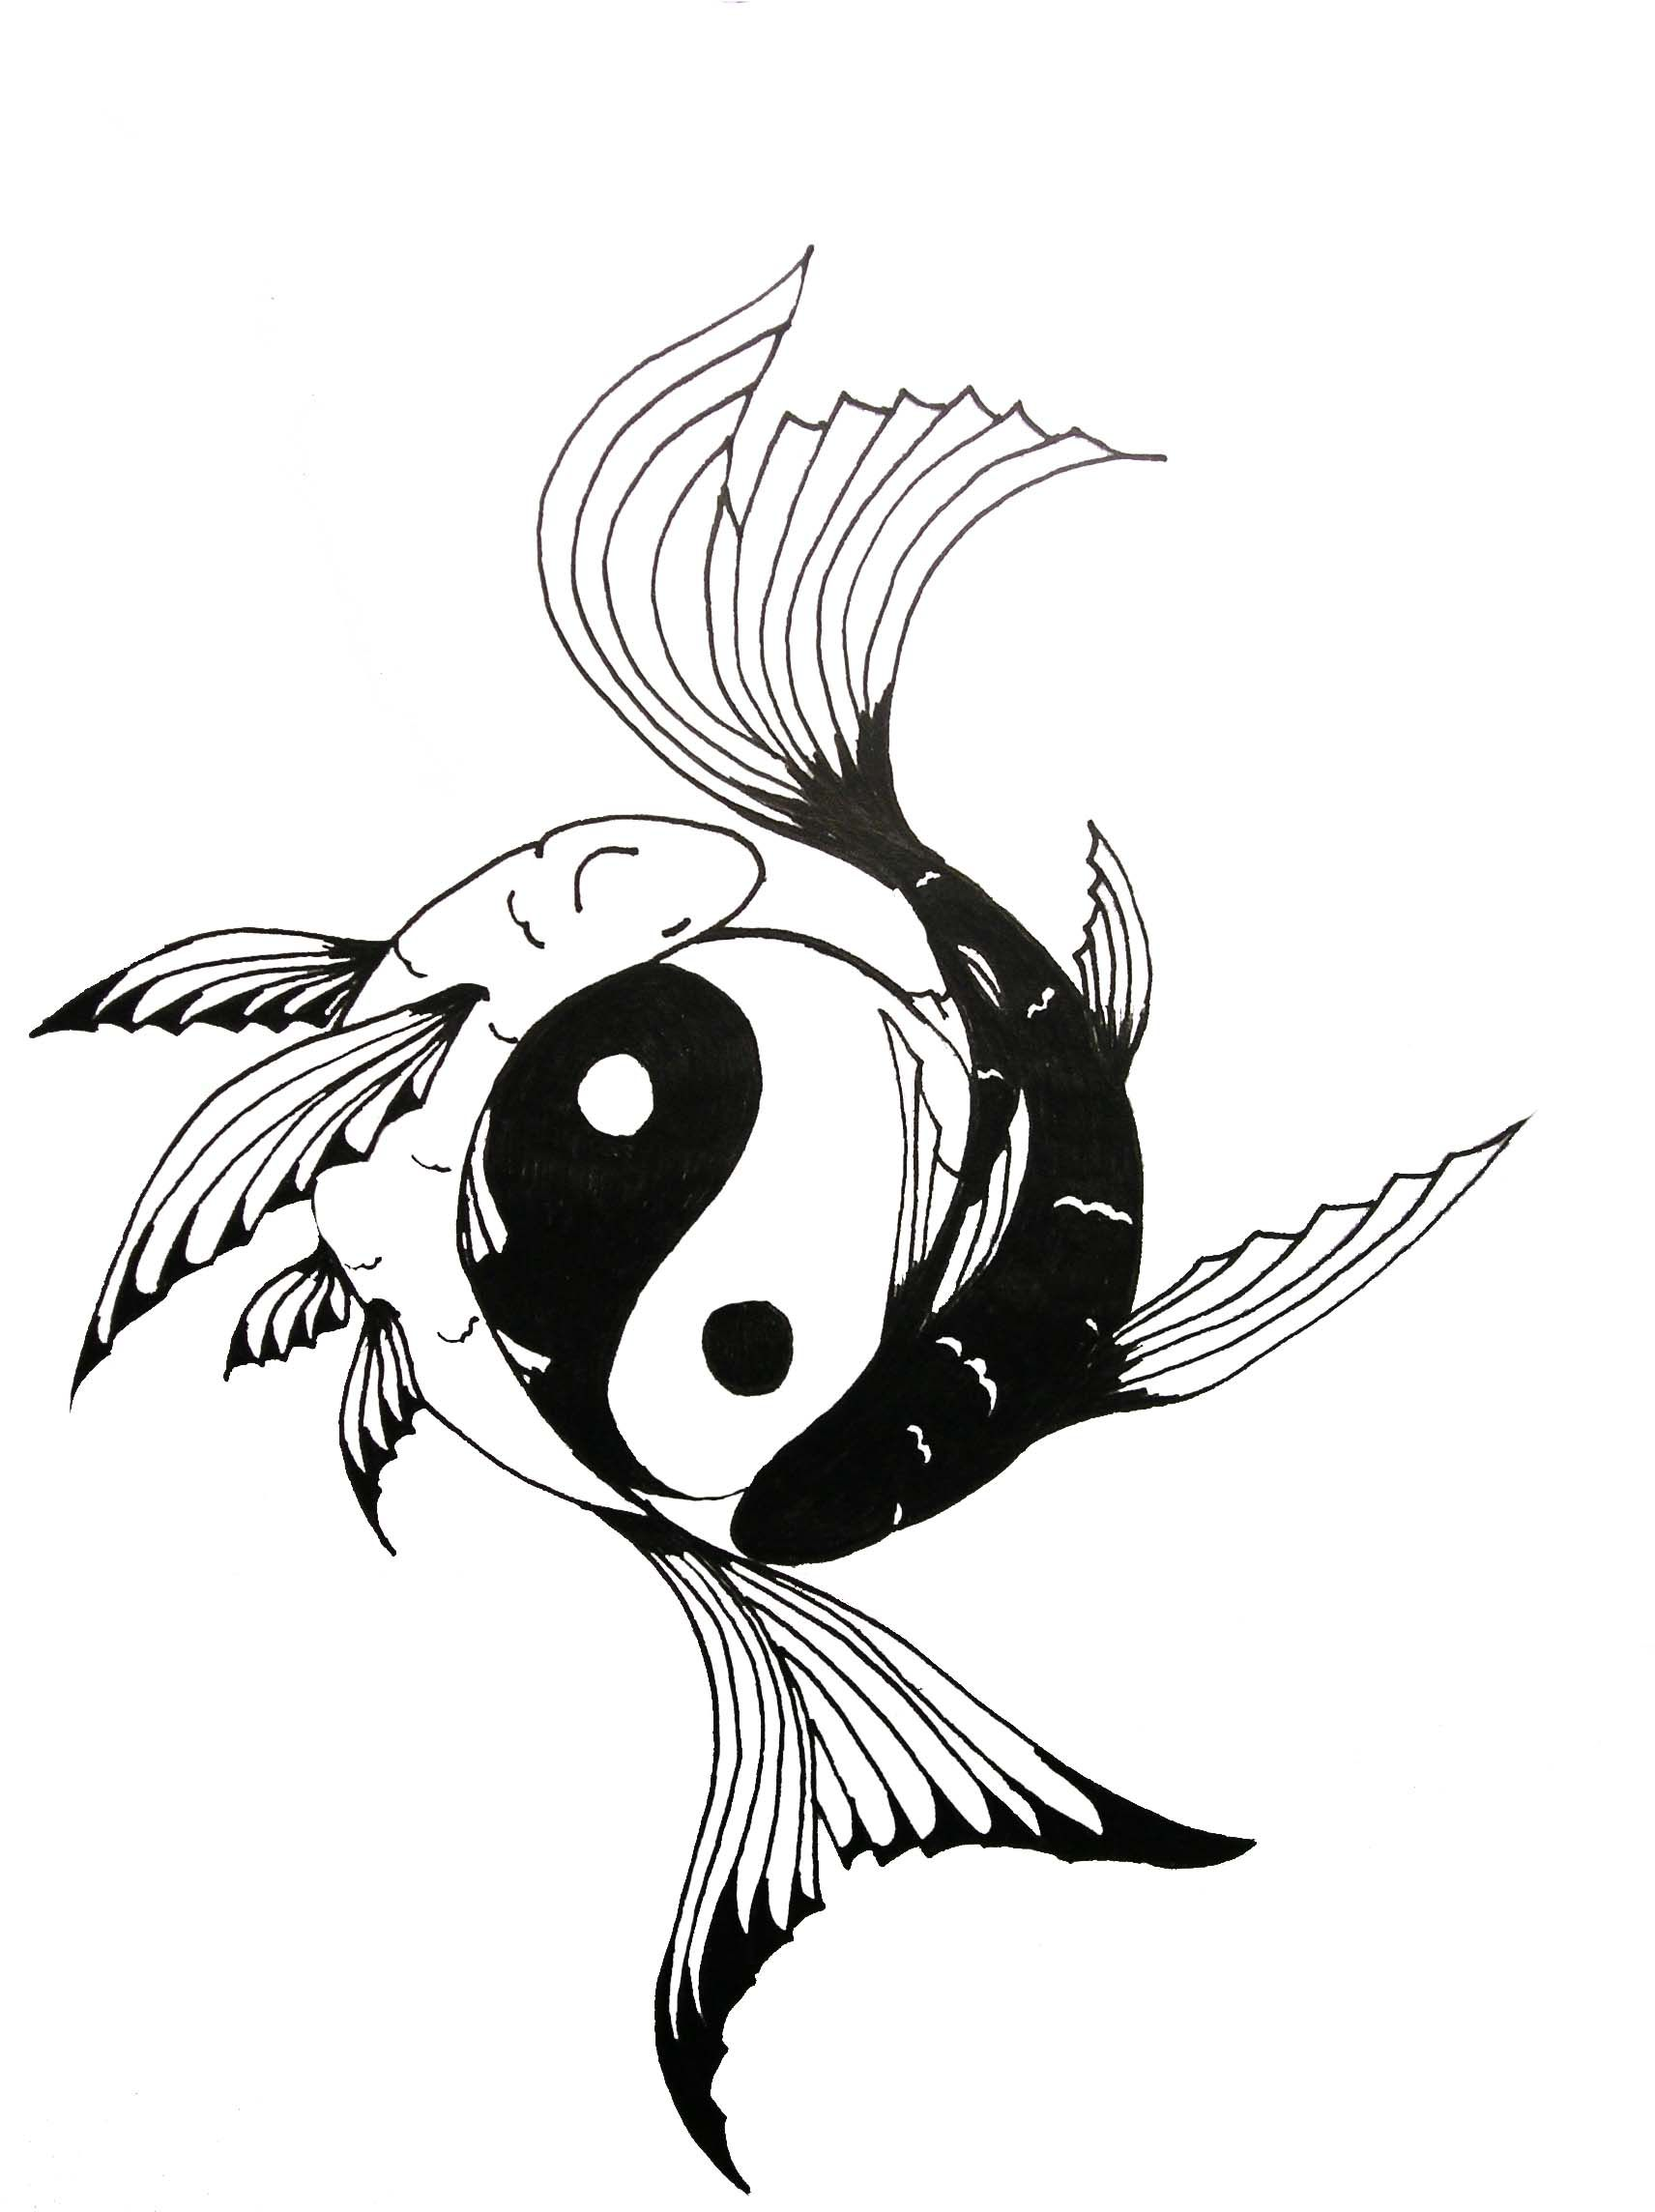 Yin Yang Tattoo By Darkmoon17 Deviantart Com On Deviantart Ying Yang